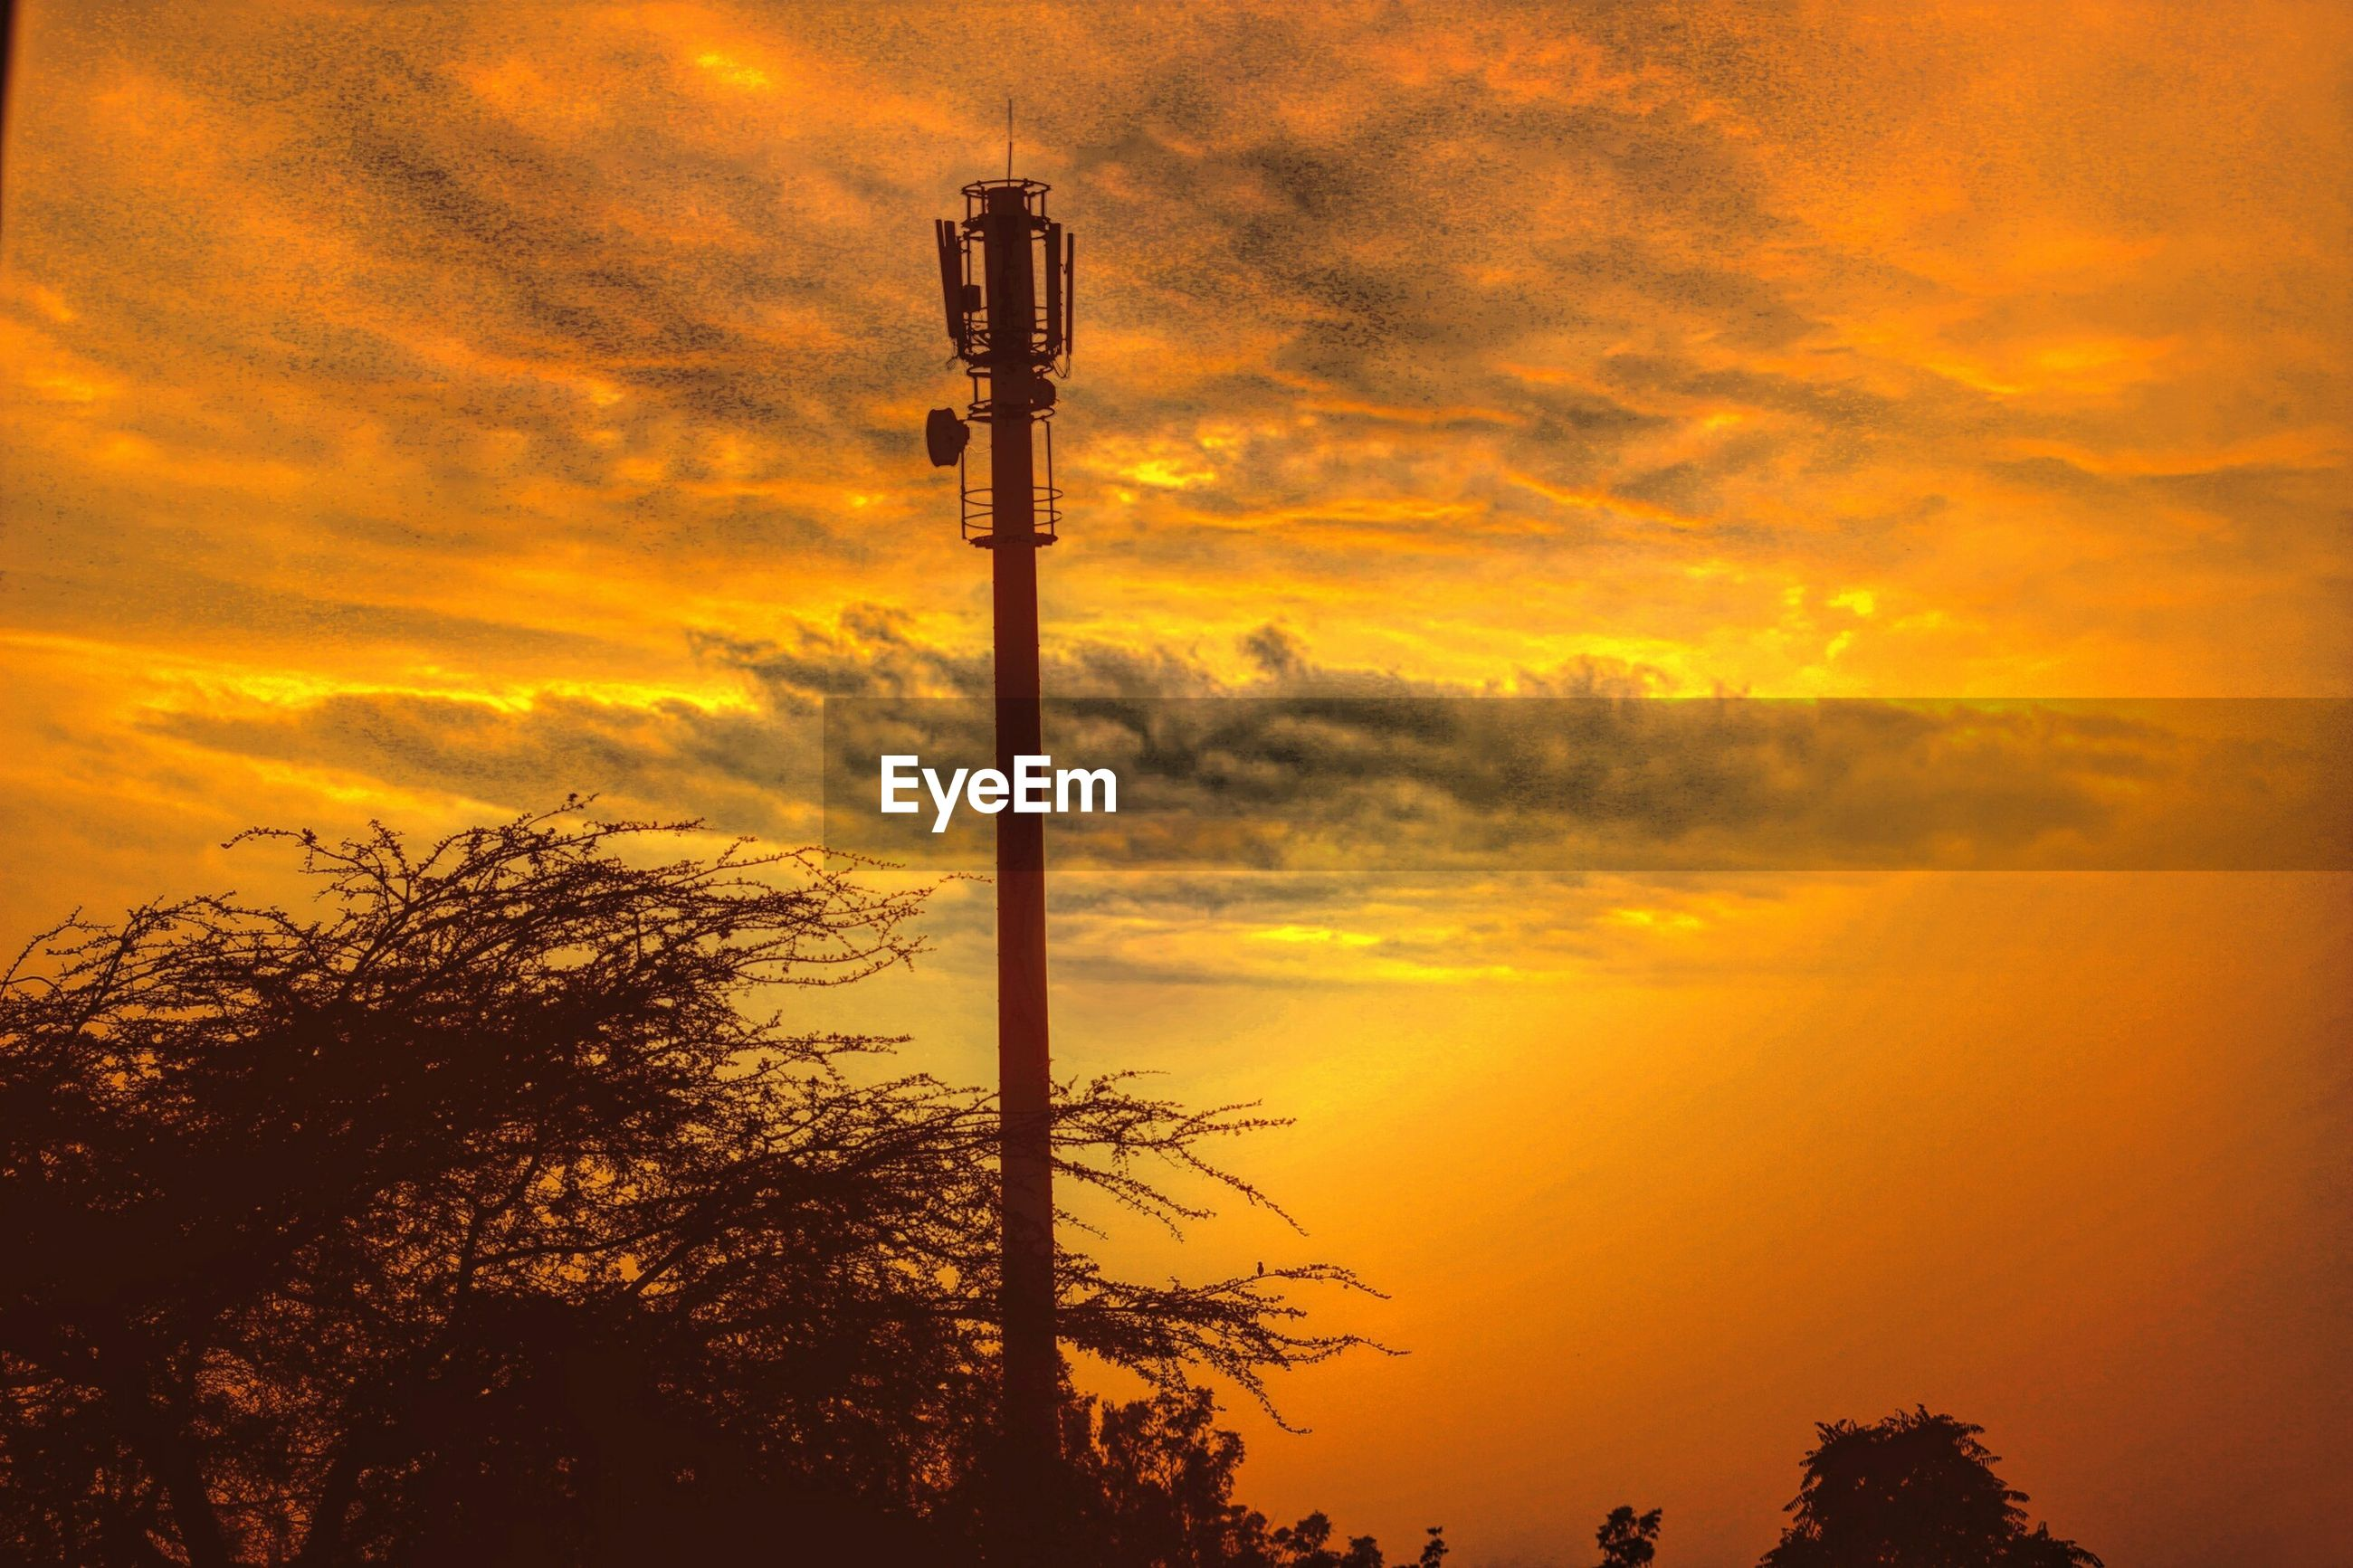 sunset, sky, silhouette, orange color, low angle view, cloud - sky, street light, beauty in nature, dramatic sky, tranquility, cloudy, scenics, tree, cloud, nature, lighting equipment, tranquil scene, idyllic, outdoors, pole